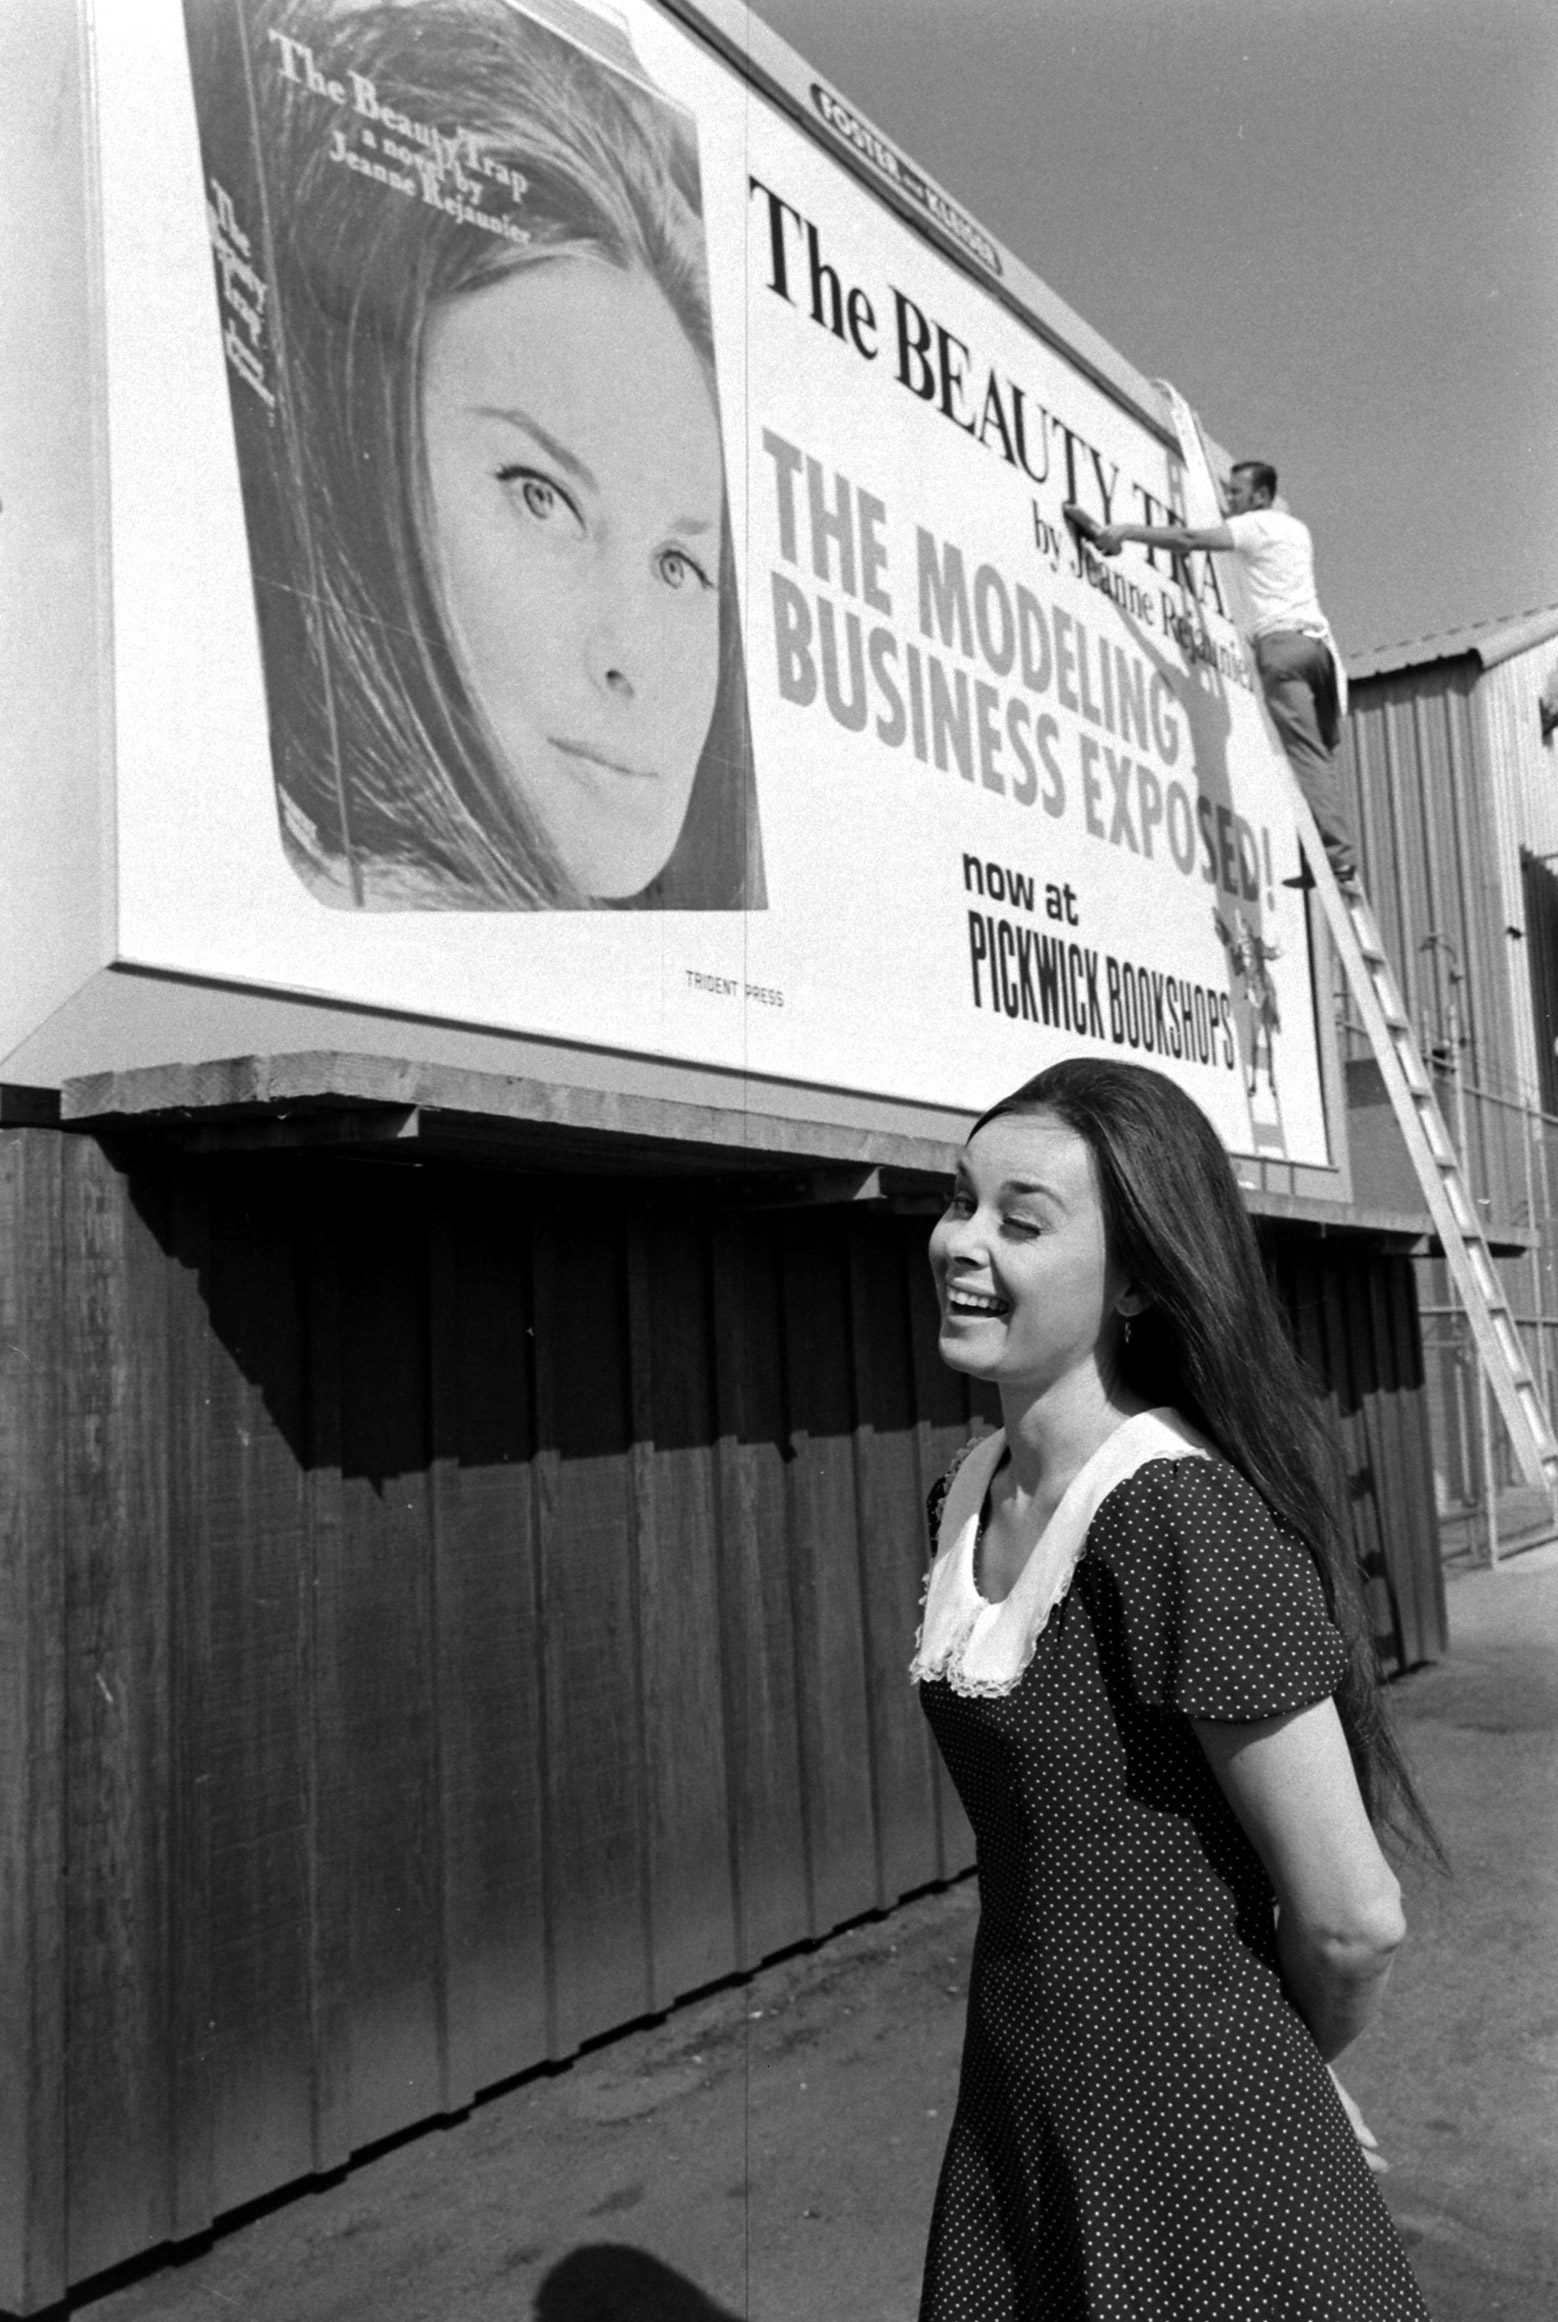 Caption from LIFE. A lady author must: have her own billboard. There is a special thrill, Jeanne admits, to seeing yourself on a Hollywood billboard. Now that her face is well-known, she often visits bookstores and boosts her novel's sales.